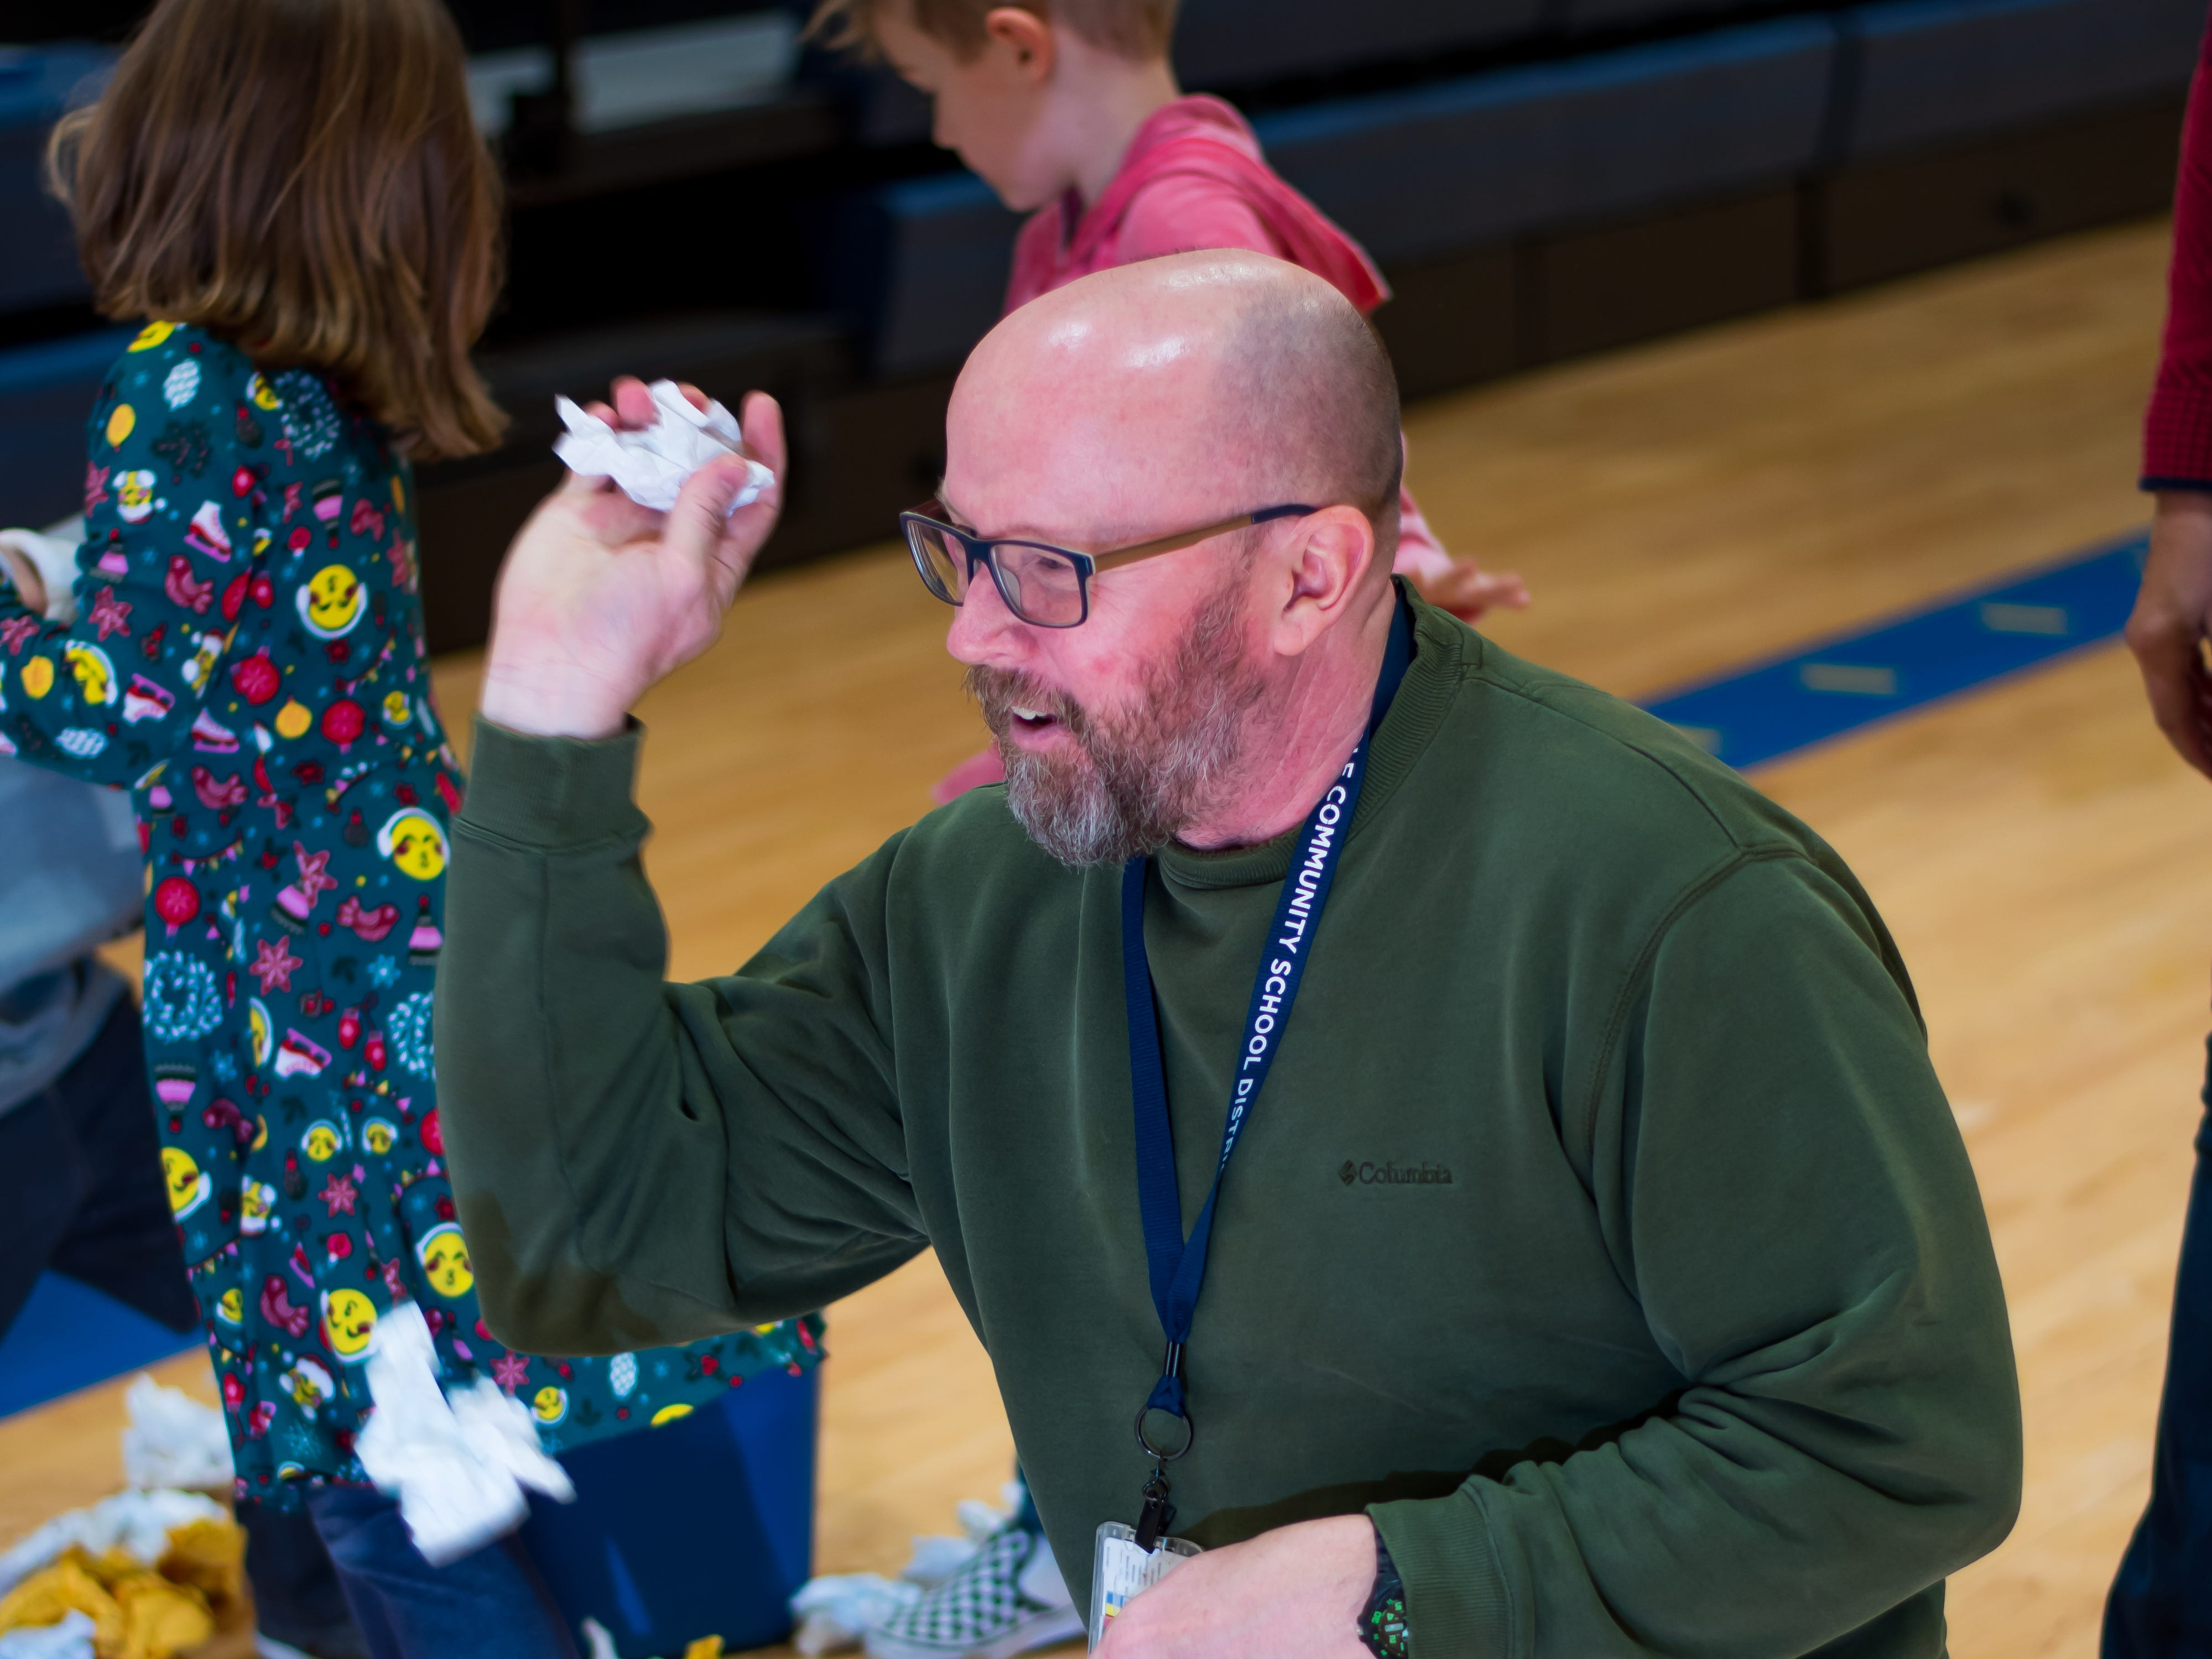 Scott Hunt, of Urbandale plays a snowball game on Friday, Dec. 21, 2018 at Karen Acres Elementary School in Urbandale for their winter party.